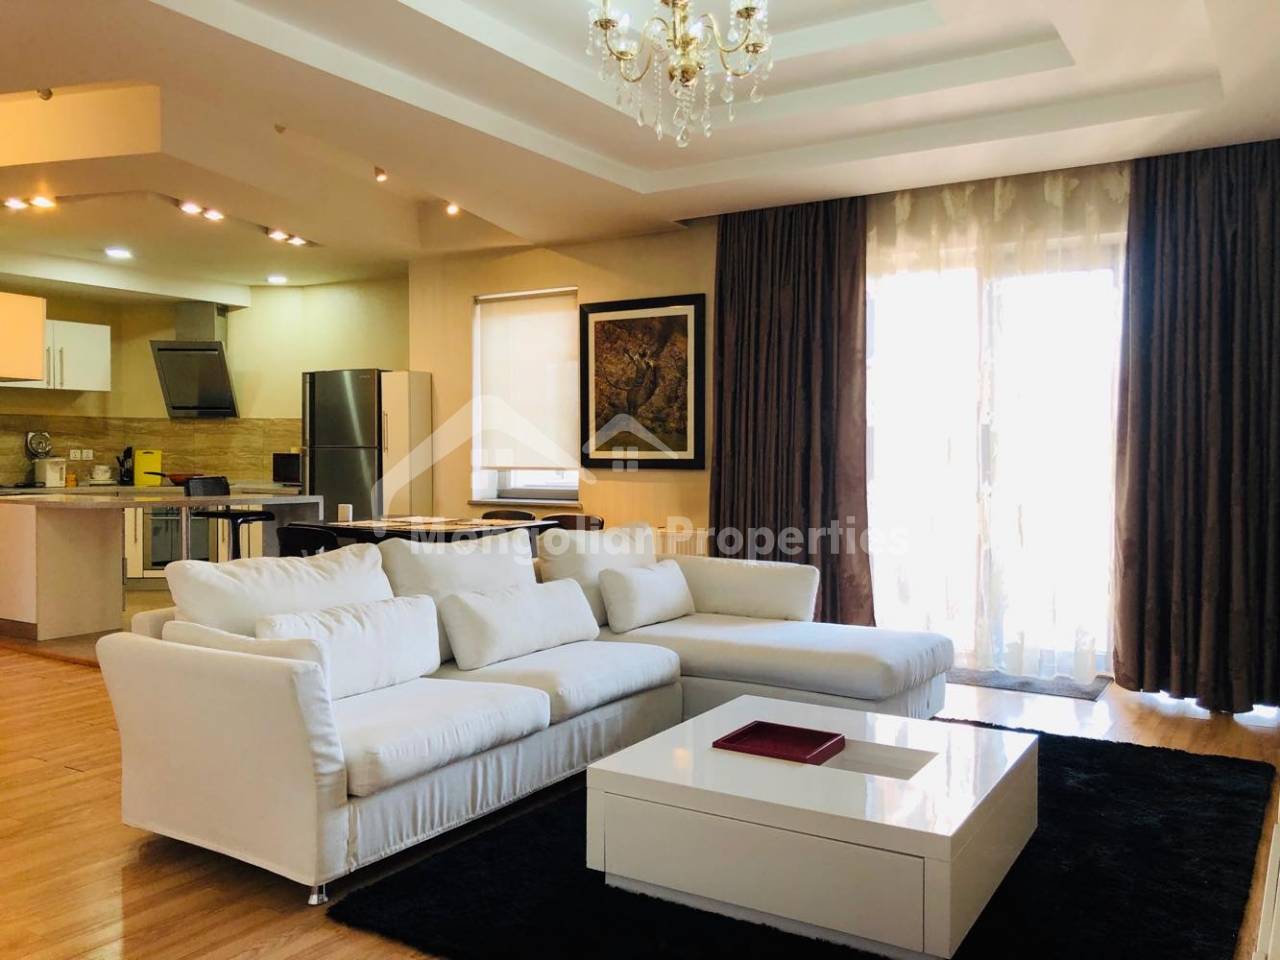 For rent: Gorgeous 2 bedroom apartment is for rent at the Regency Residence